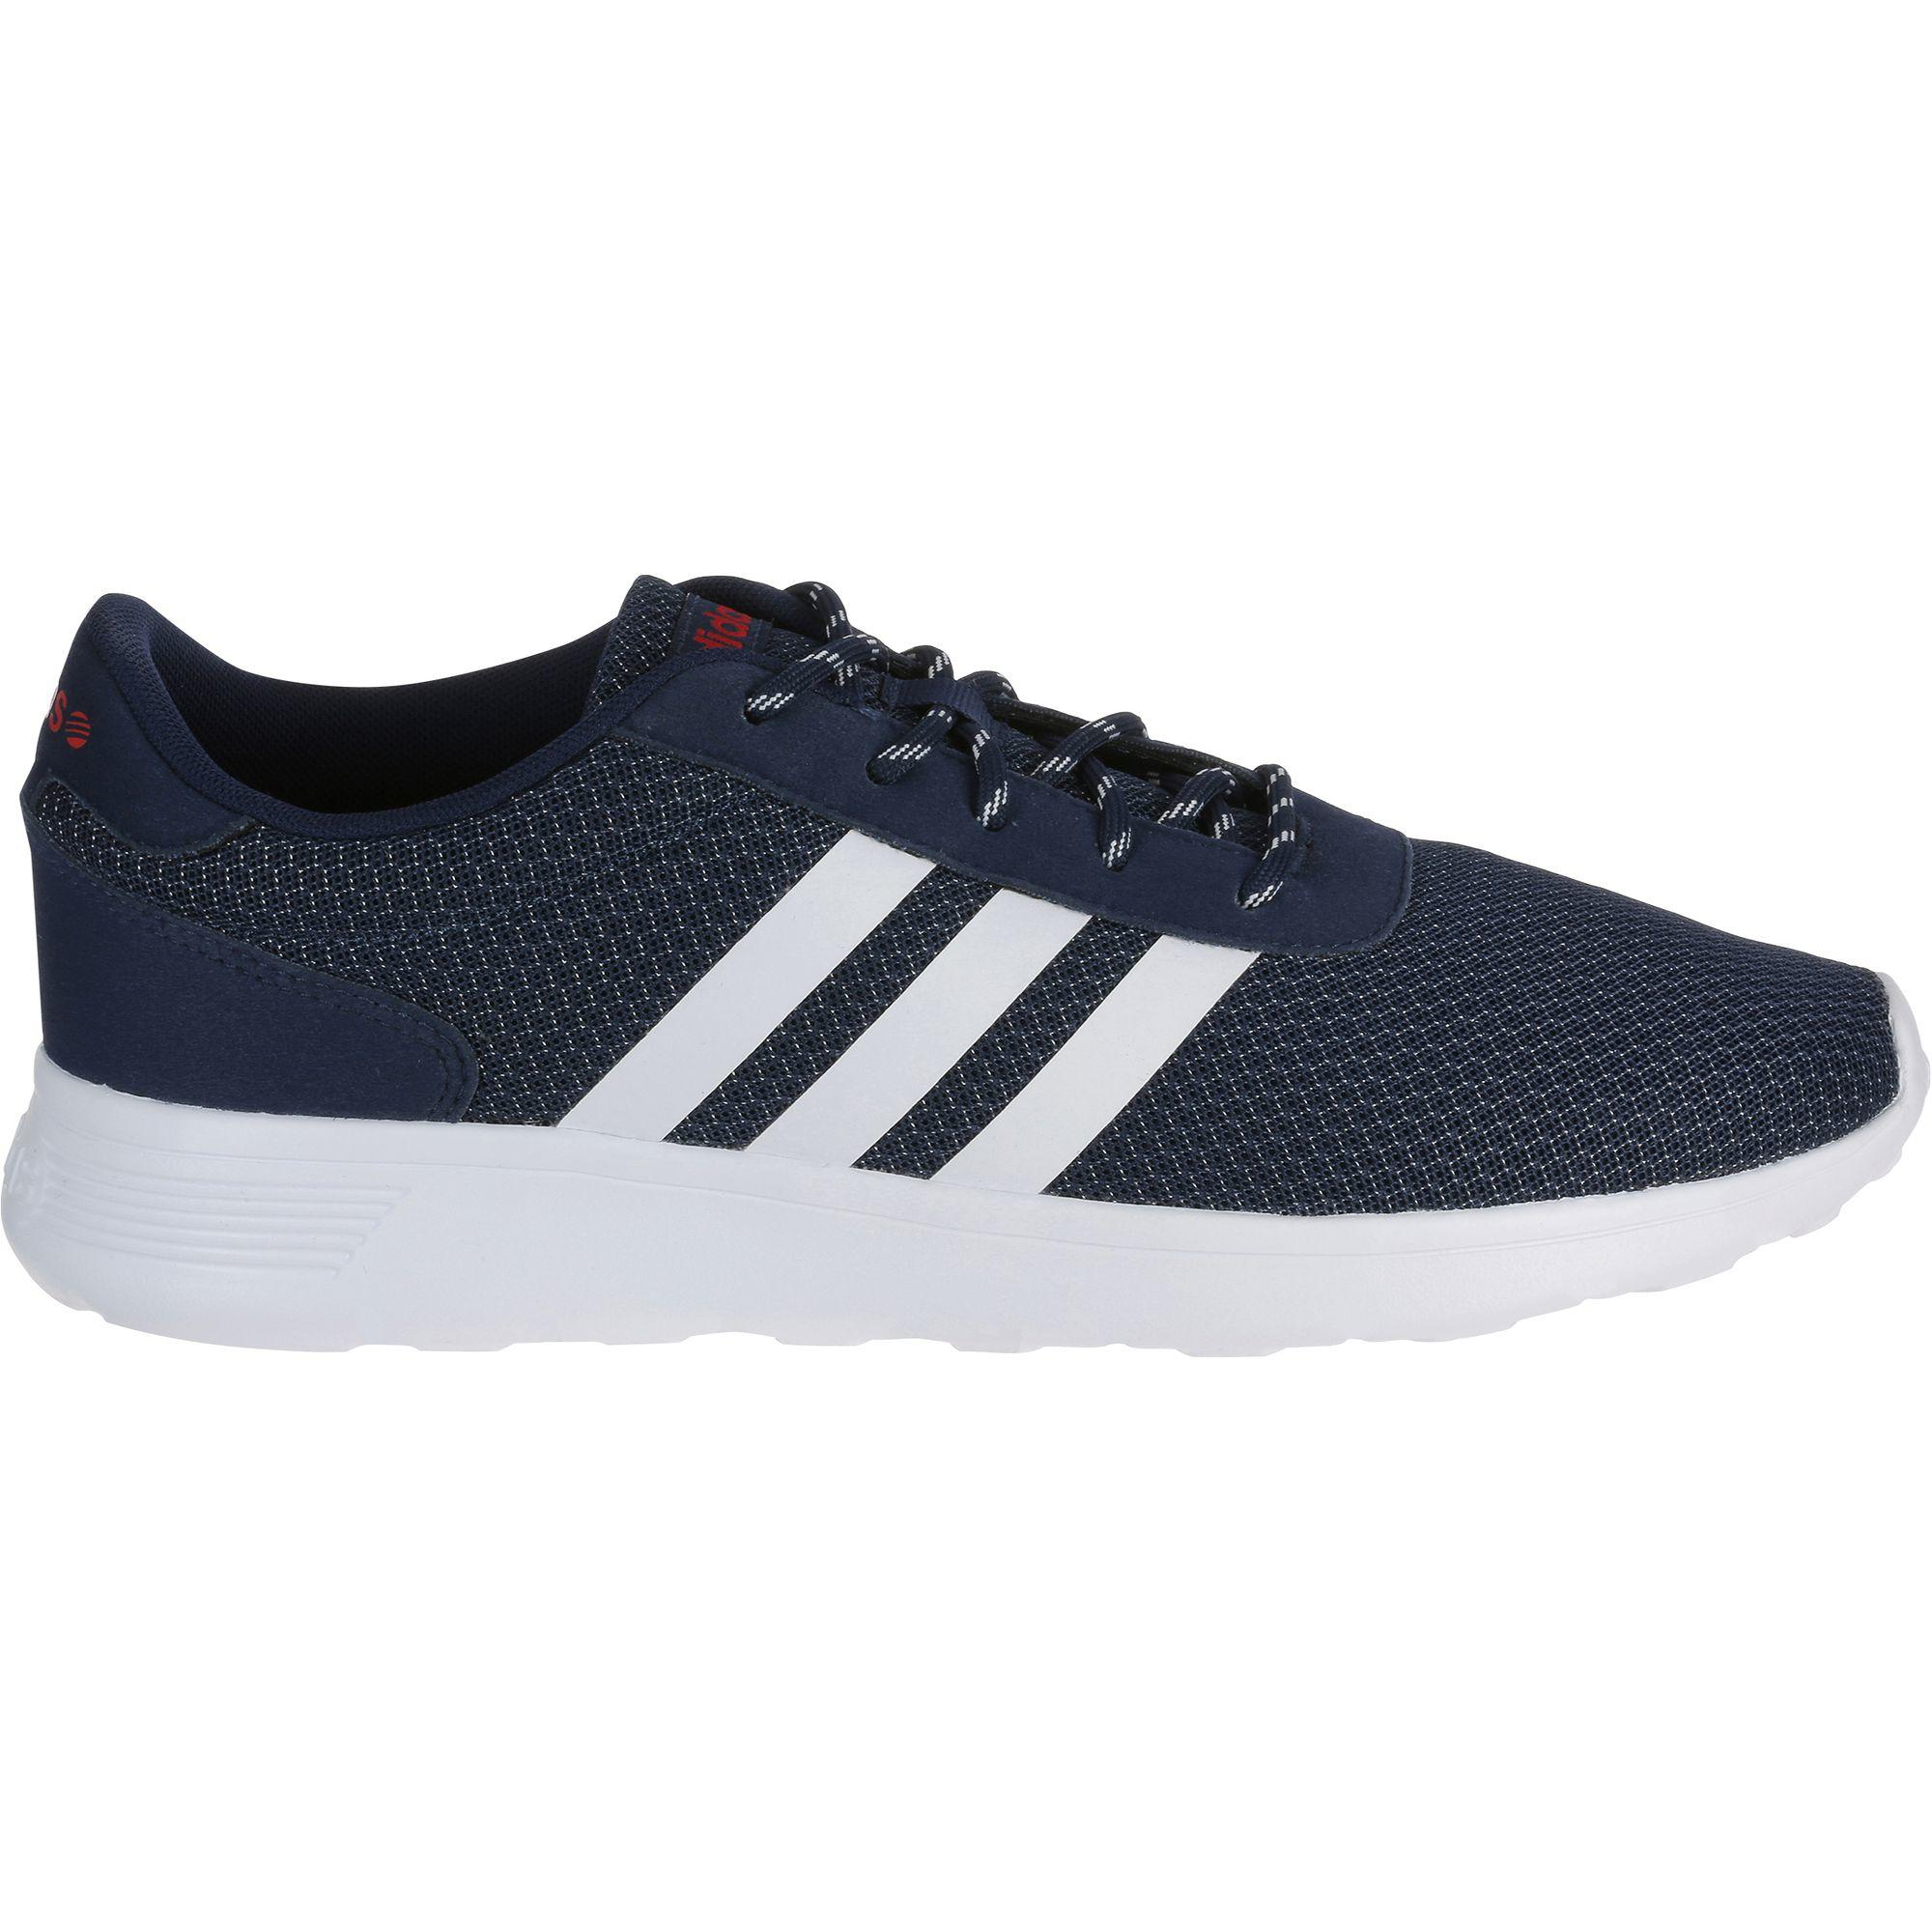 Herensneakers Lite Racer blauw-wit